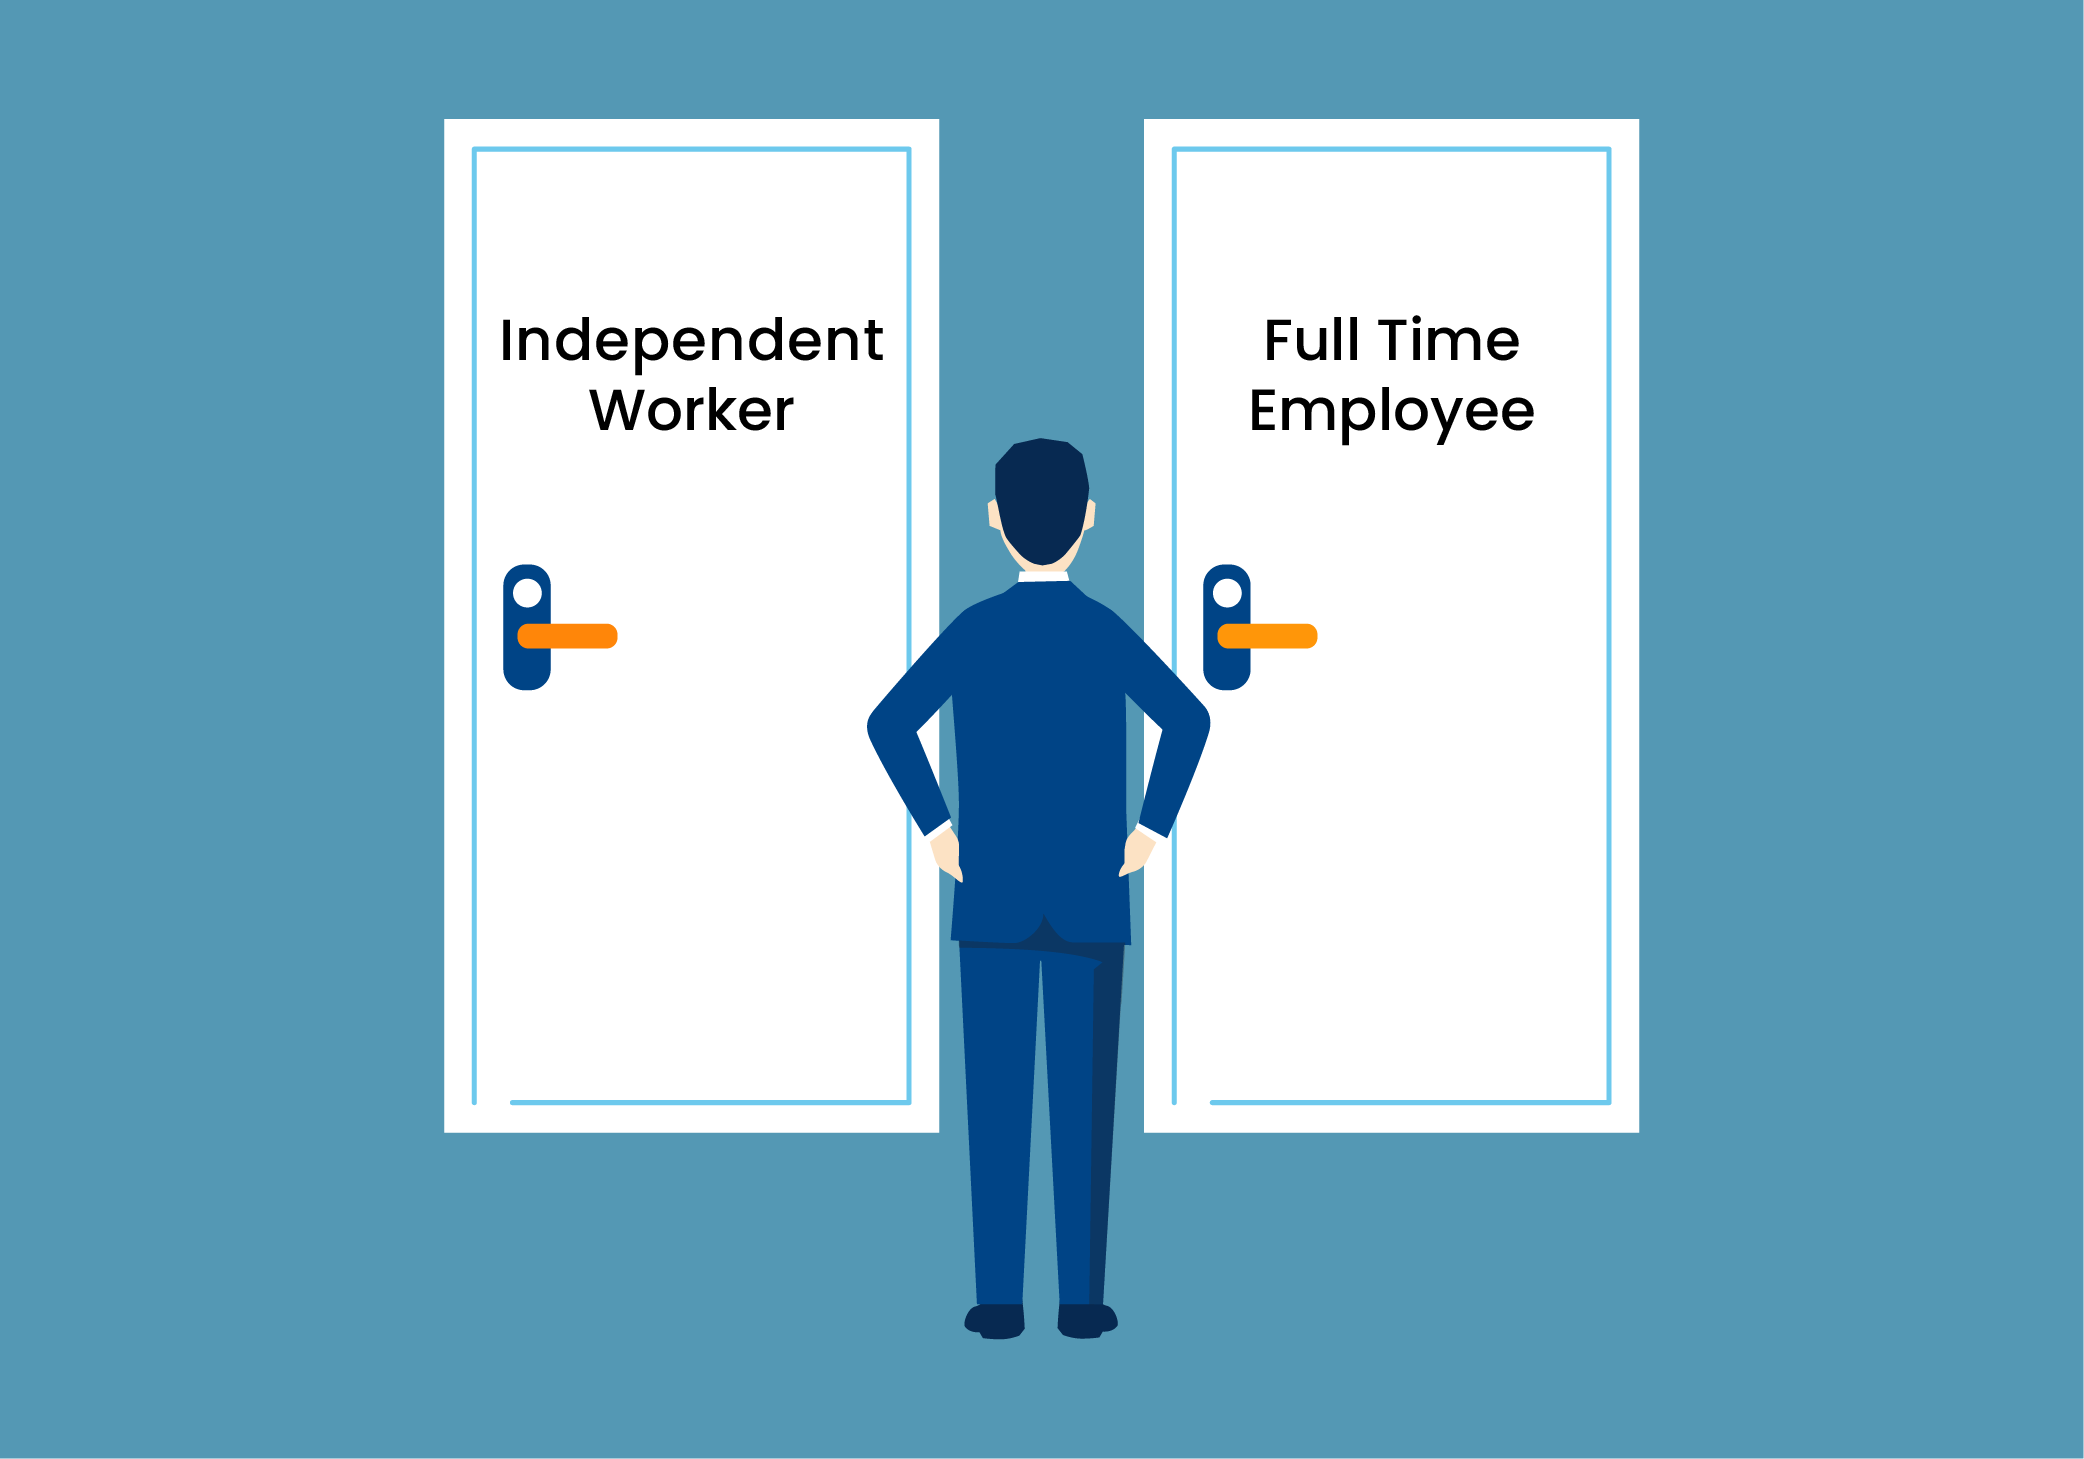 Independent Worker versus Full Time Employee